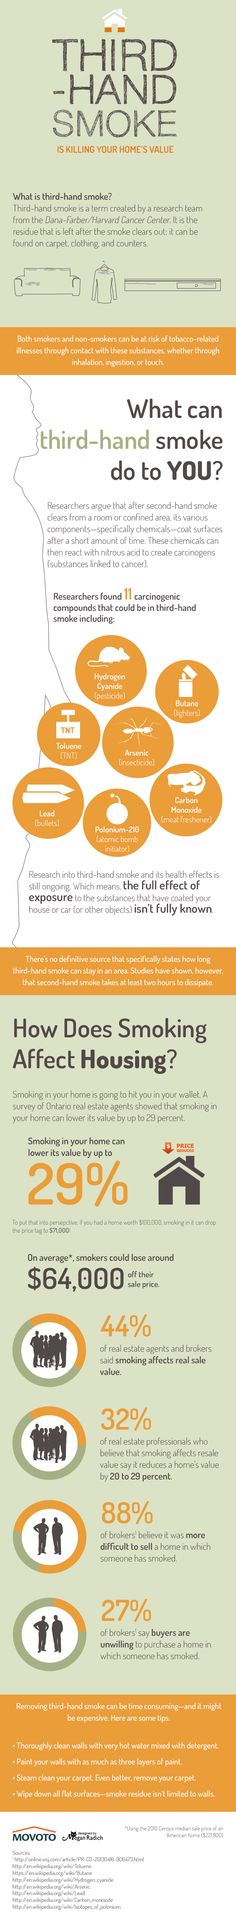 How third-hand smoke ruins your home #health #infographic #home